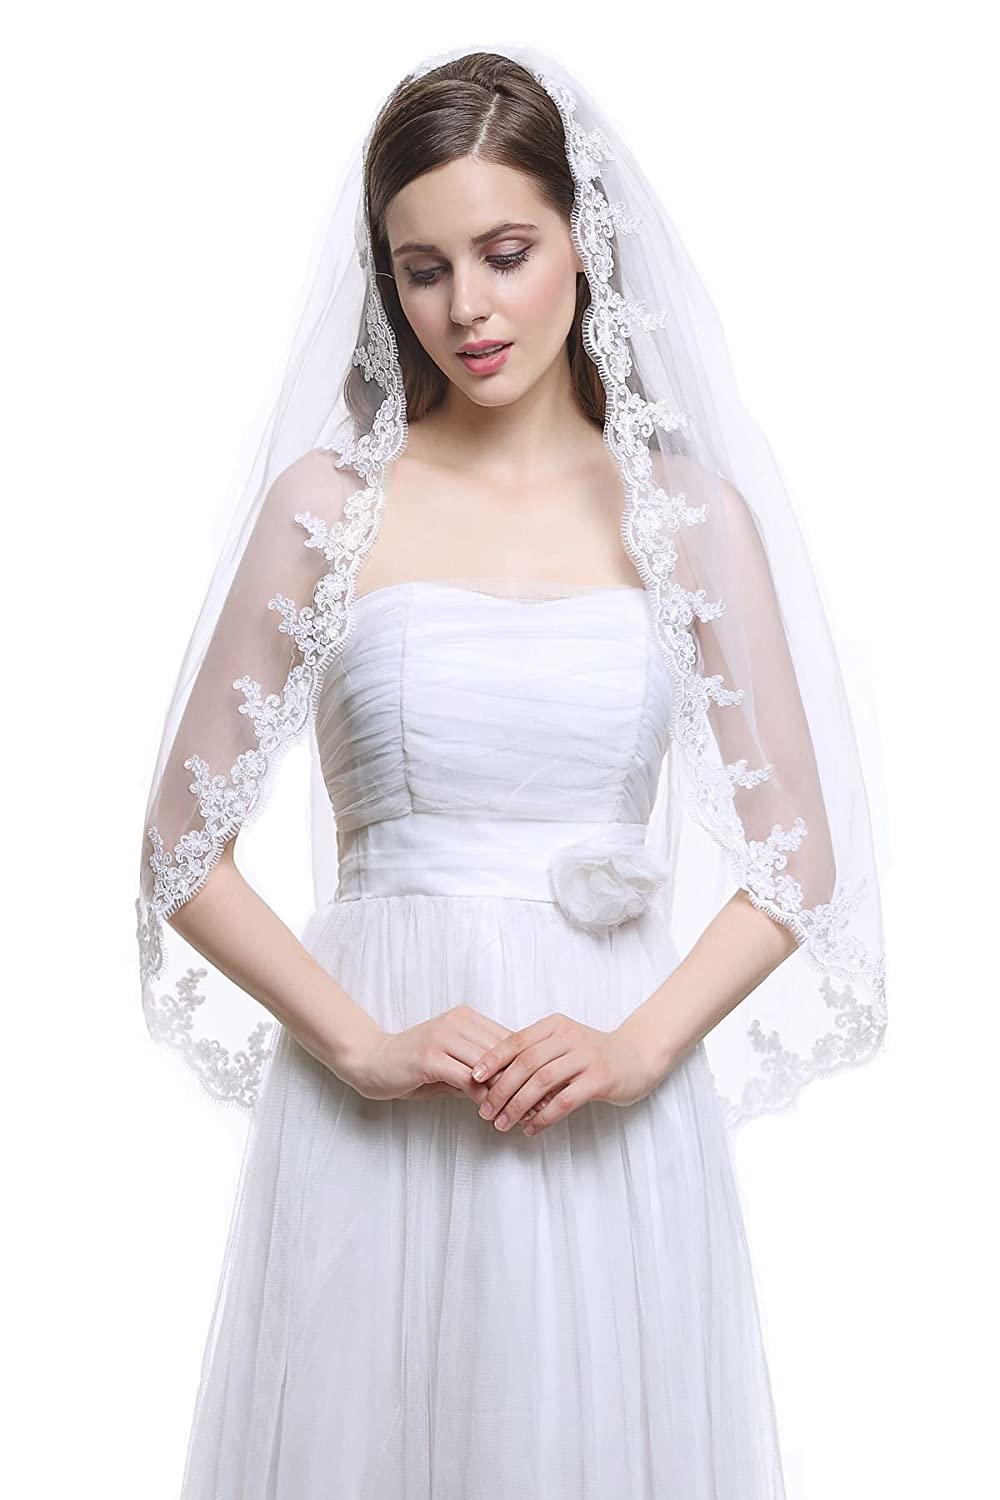 1 Tier Ivory and White Fingertip Tulle Bridal Wedding Veil Applique Edge with Comb-V33